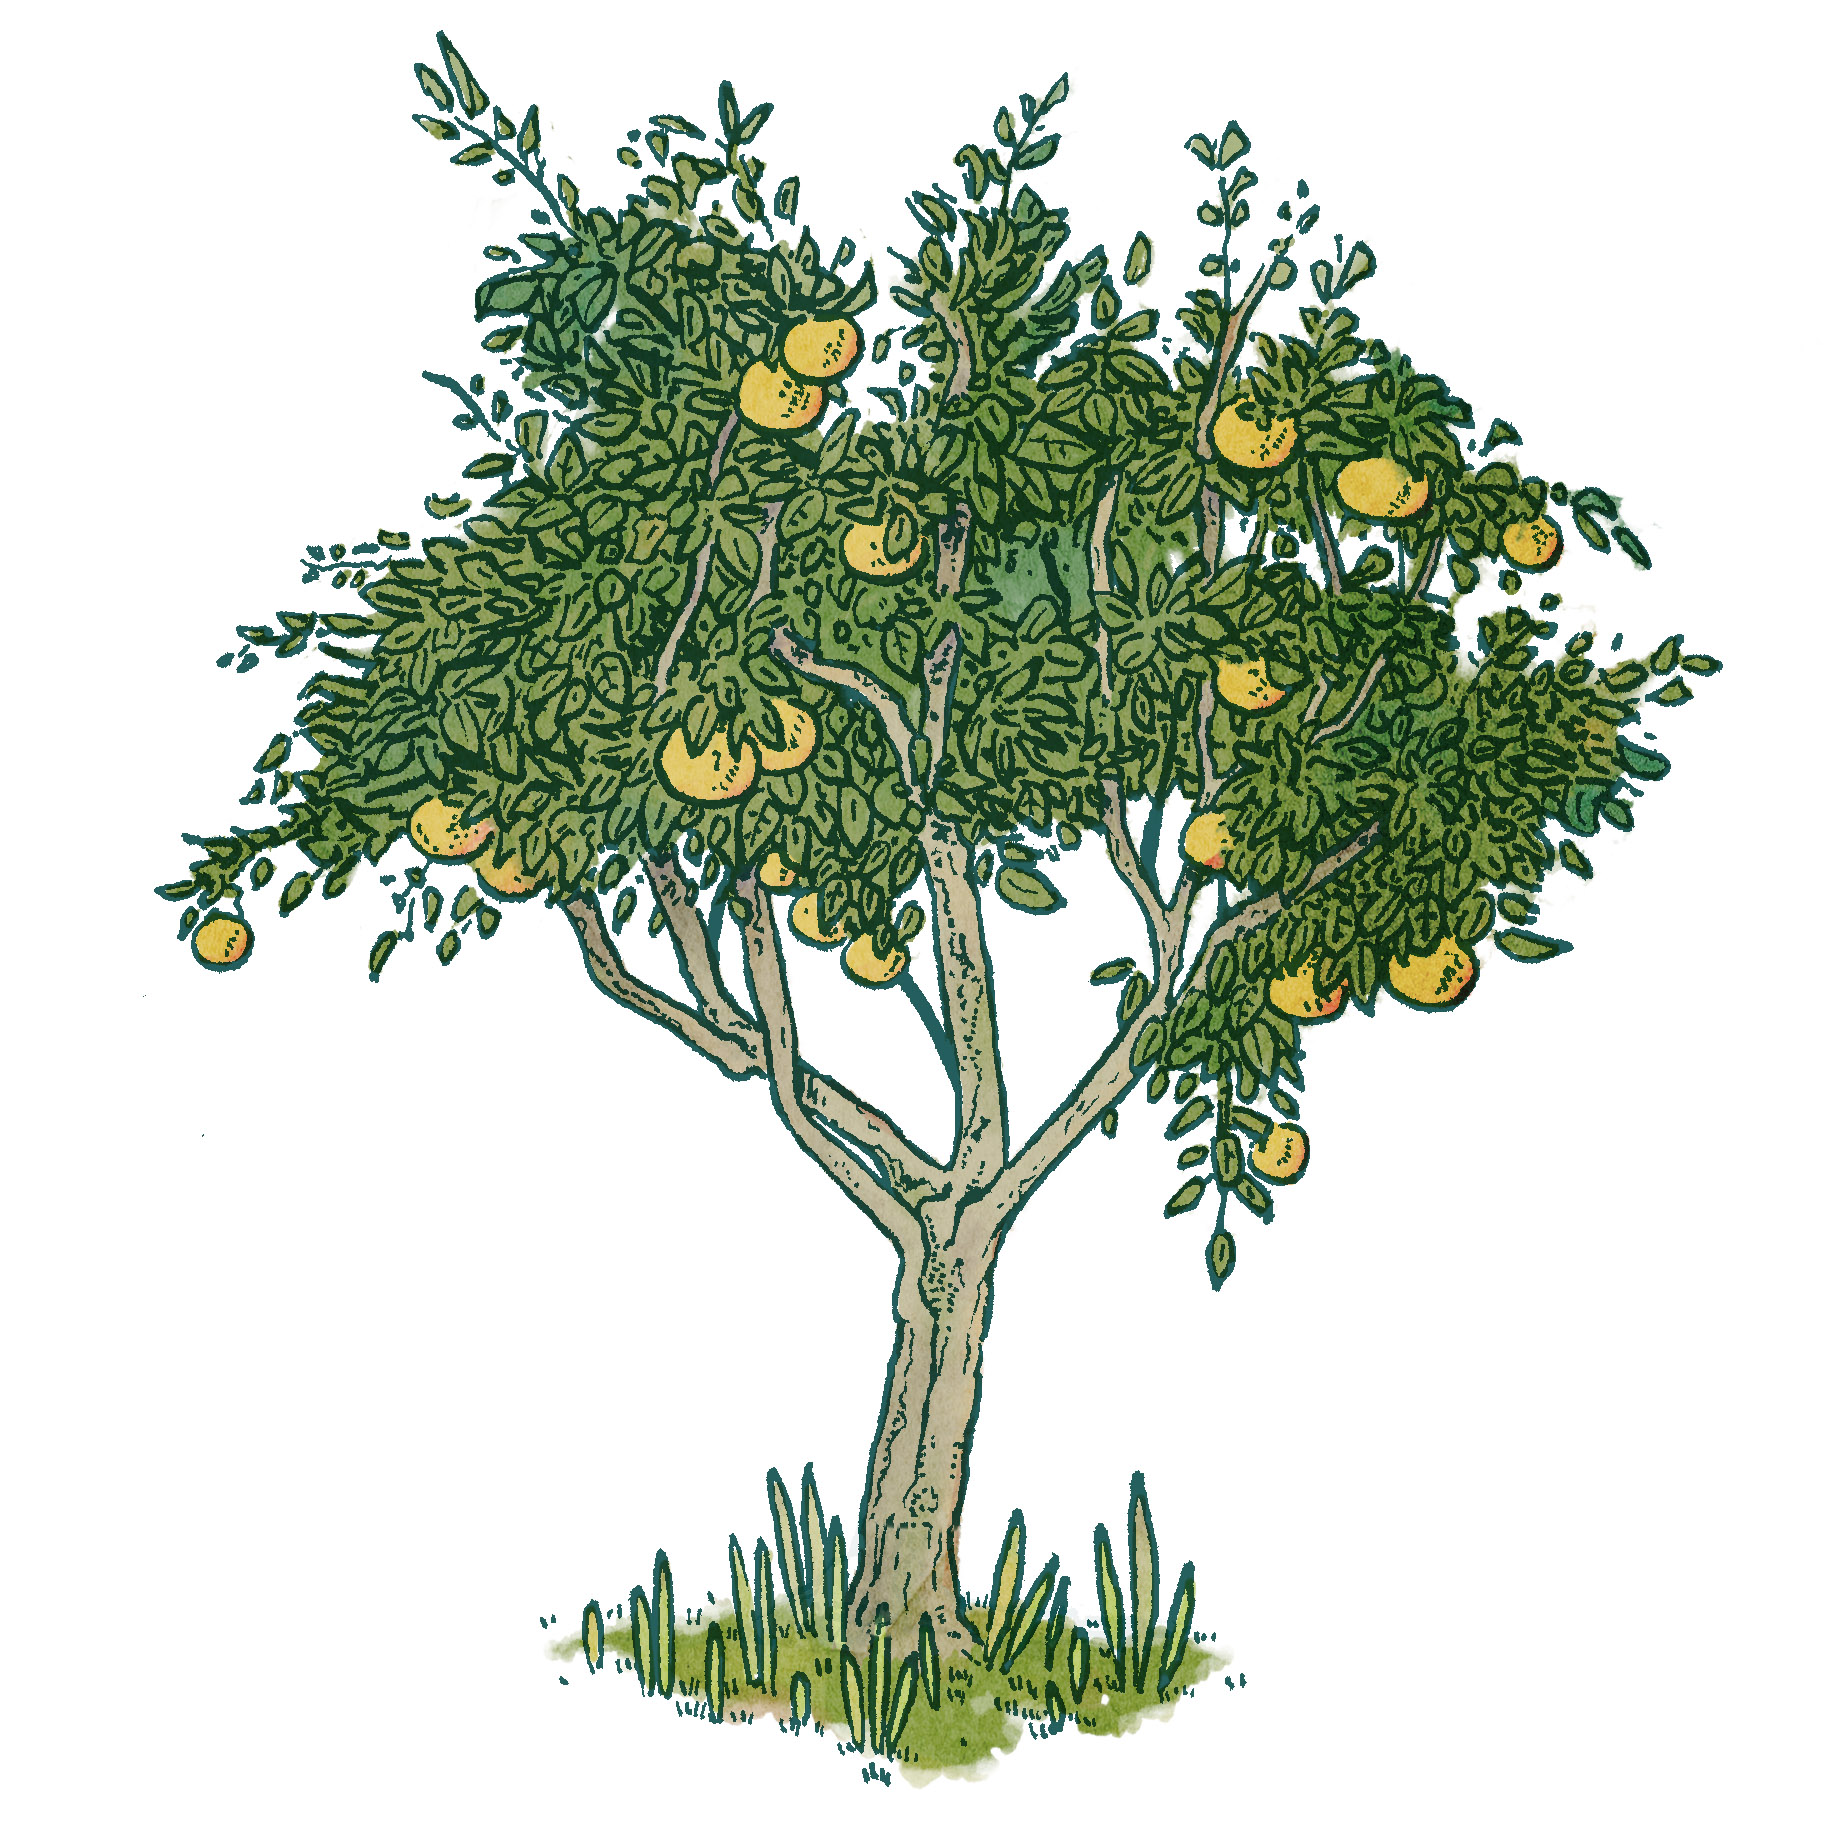 a drawing study of an orange tree